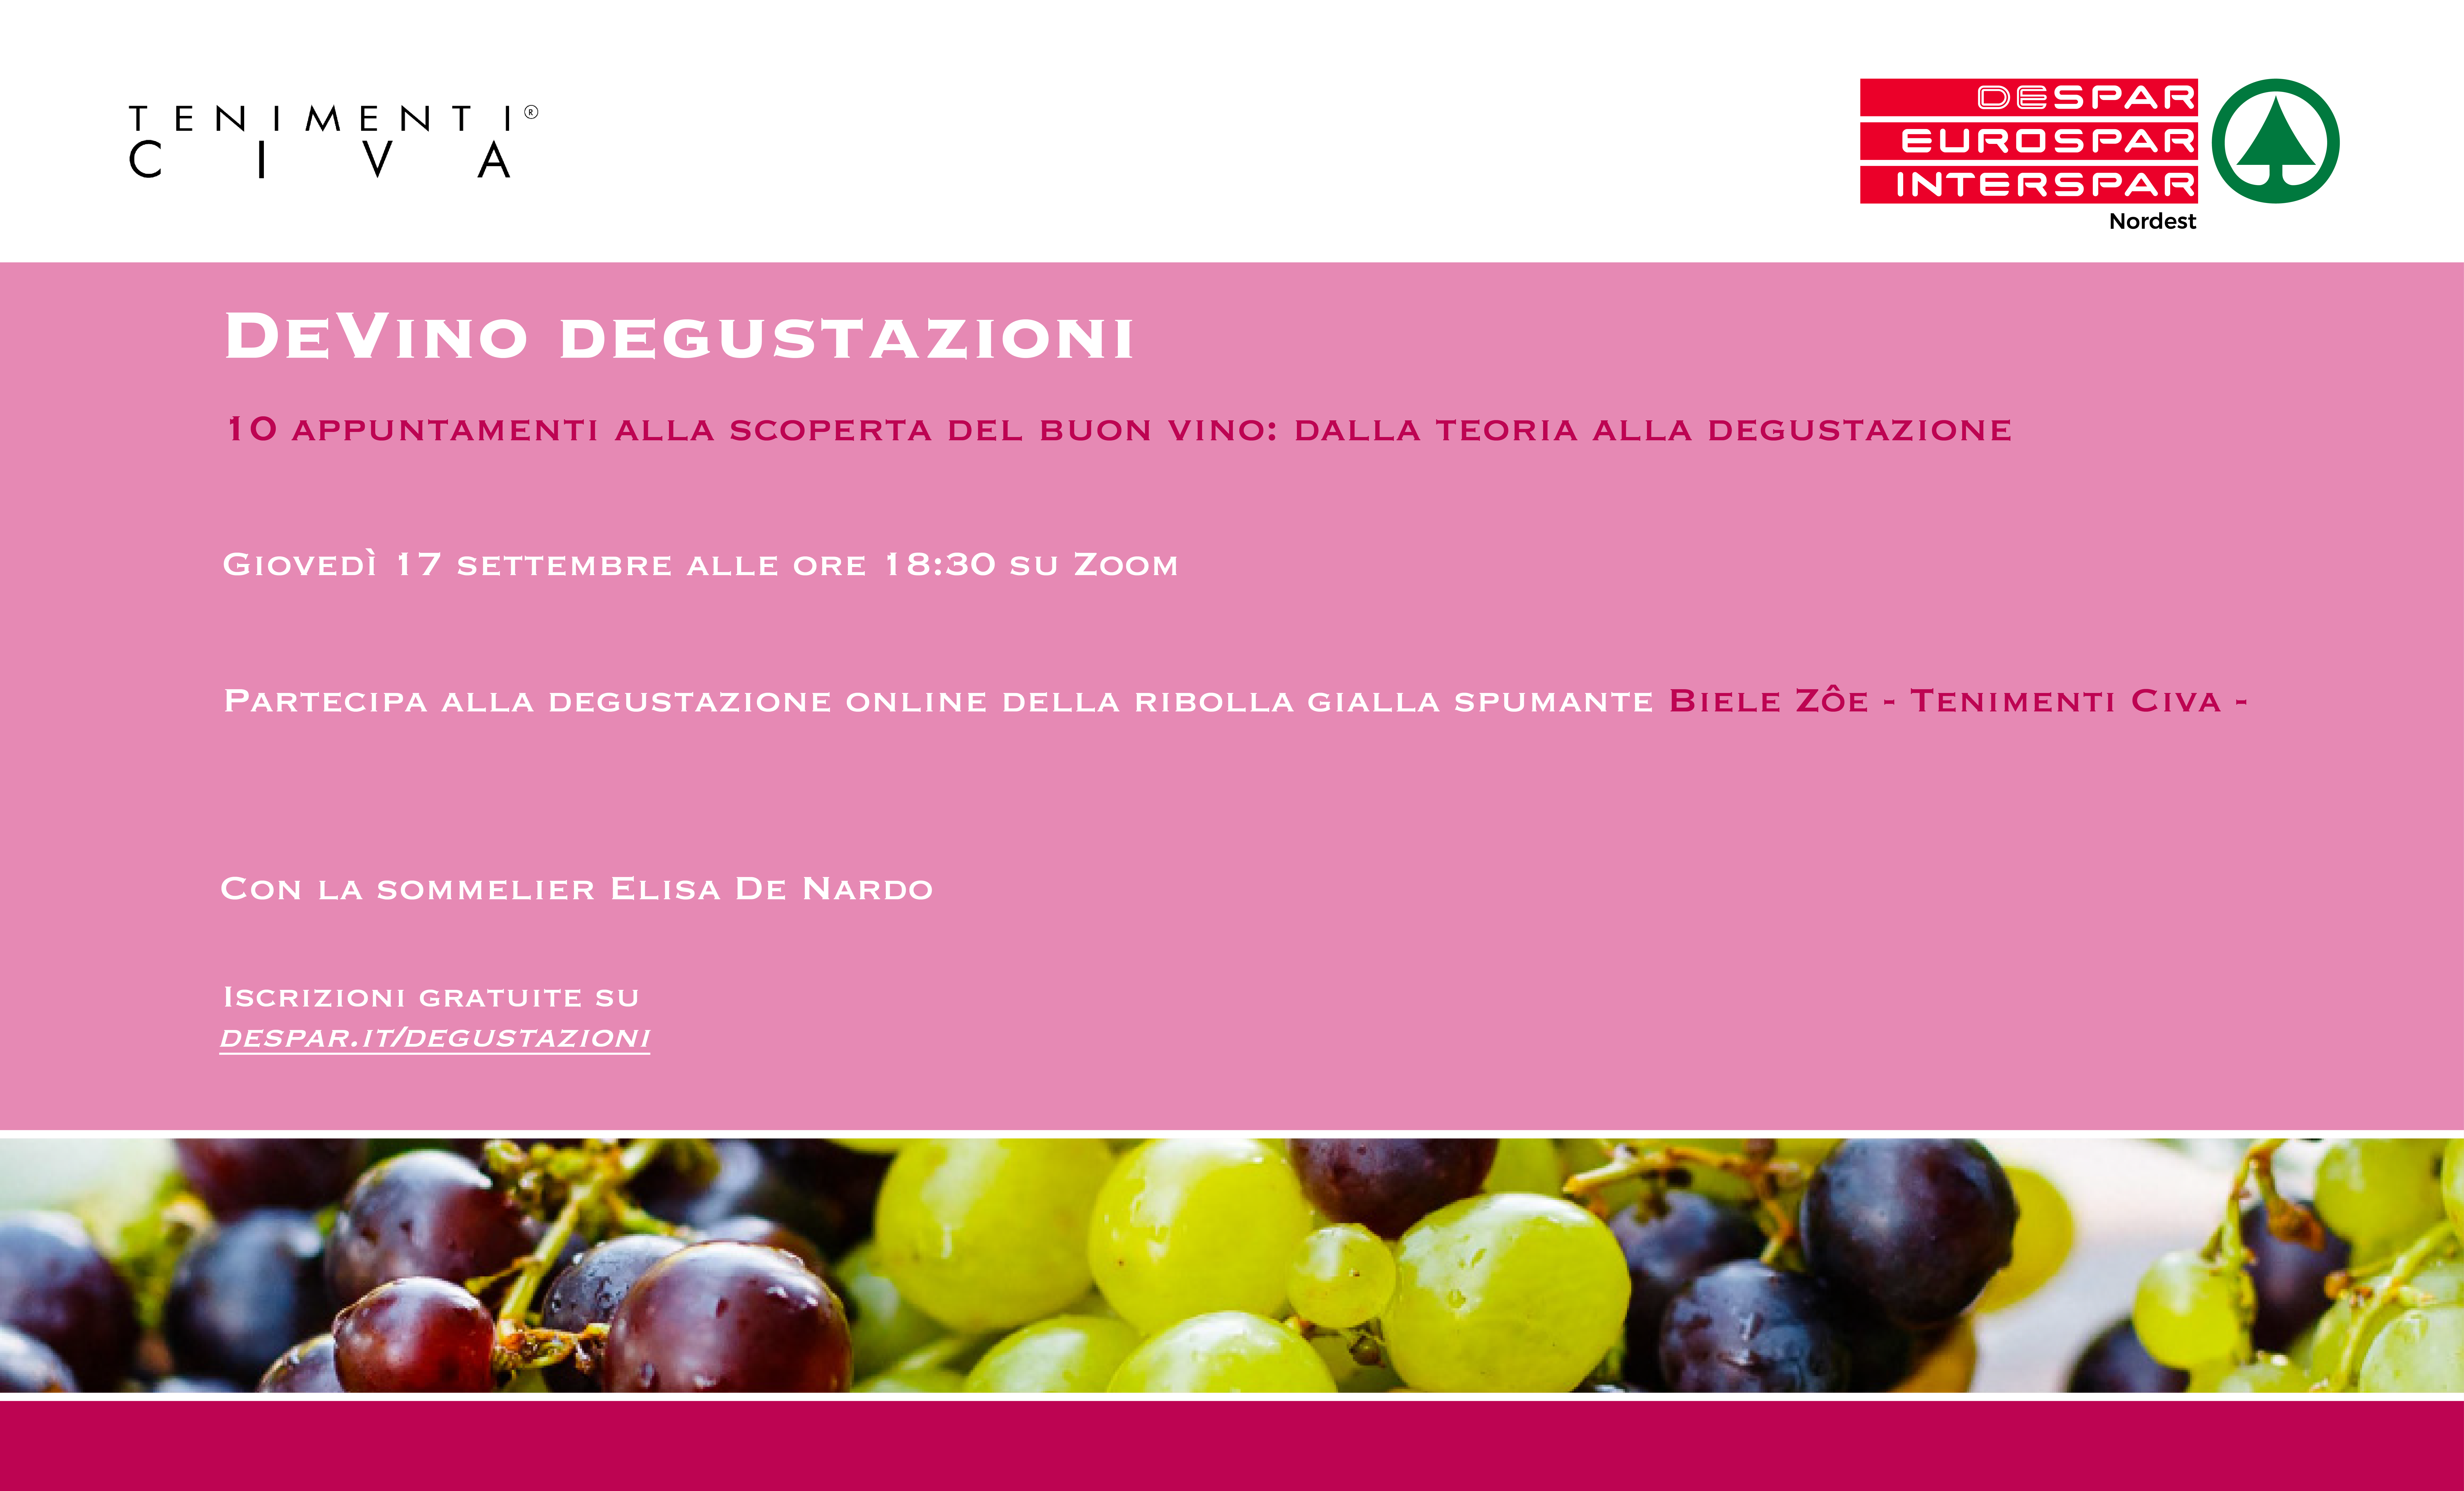 Discover good wine with us on Zoom: from theory to tasting with Tenimenti Civa, Despar, and Slow Food's Elisa De Nardo